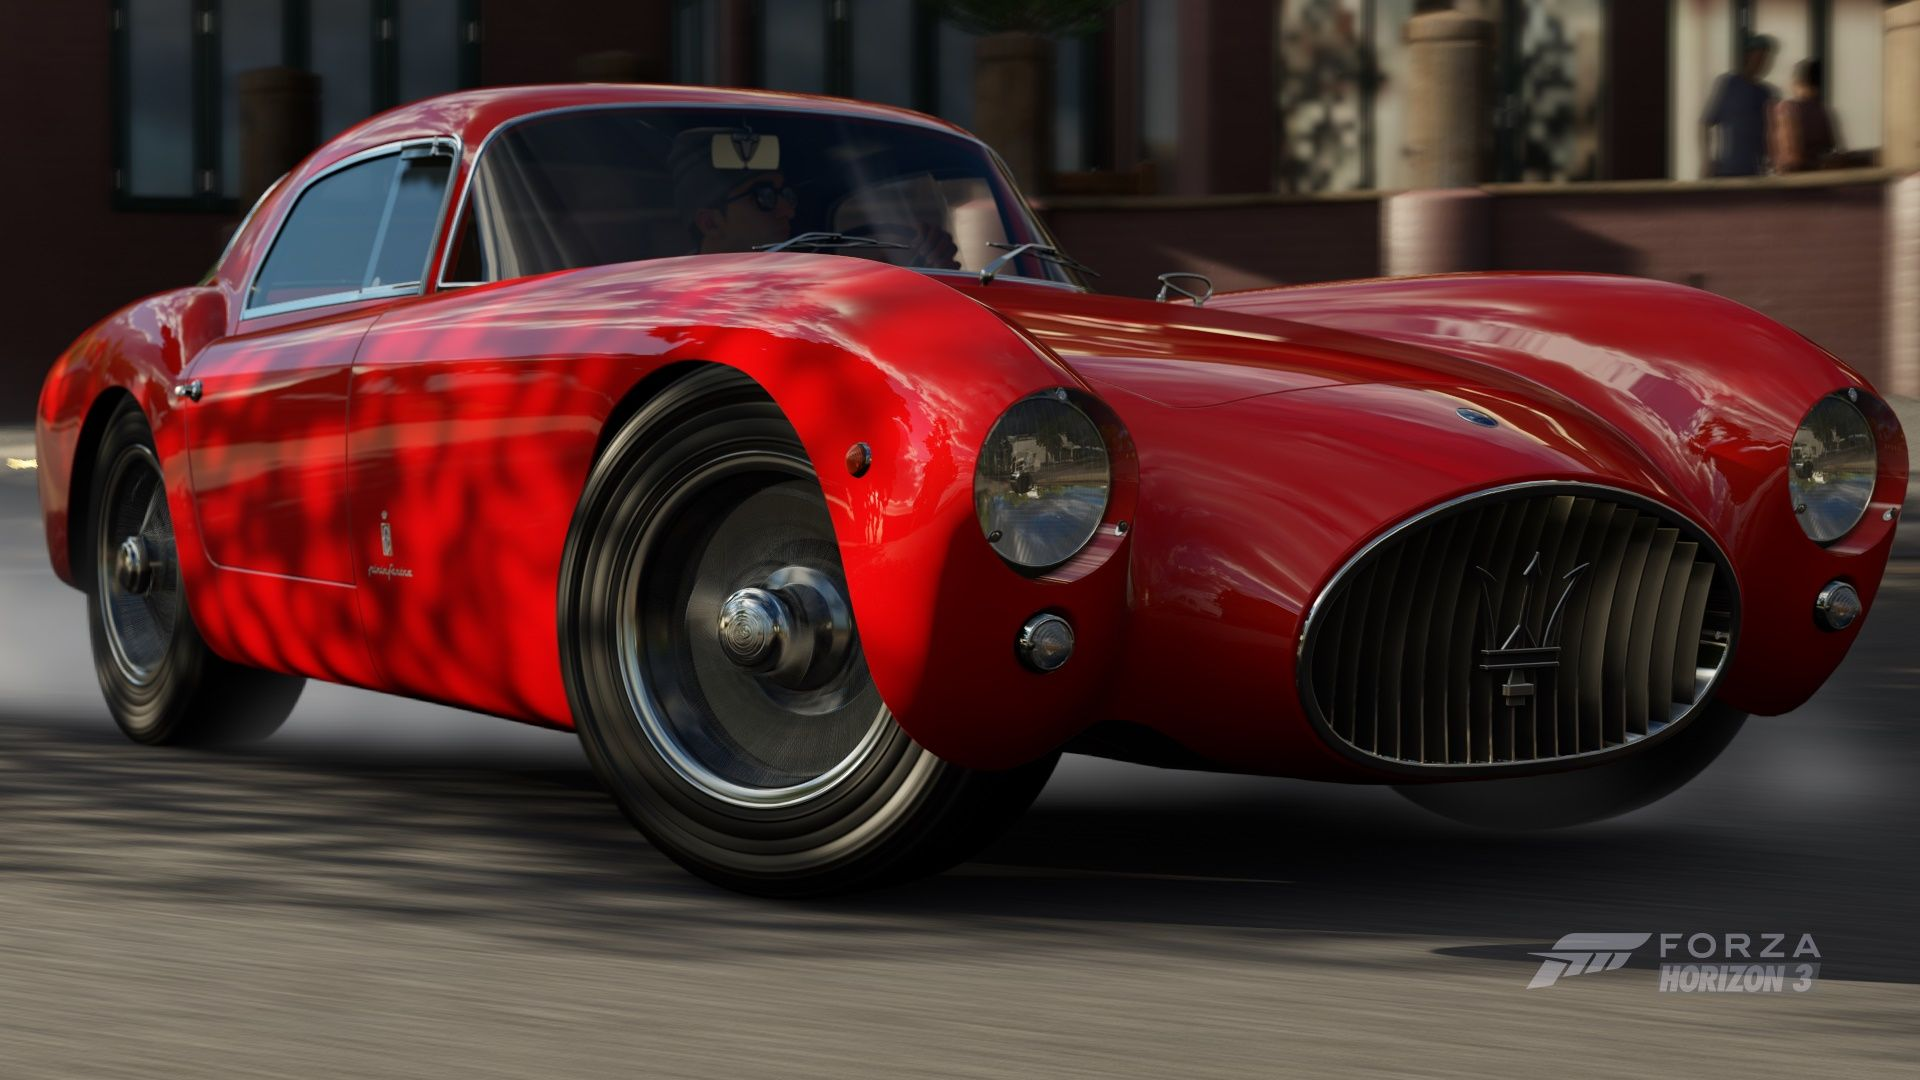 Hd Tune Up Cars Wallpaper 1953 Maserati A6gcs 53 Pininfarina Berlinetta Fh3